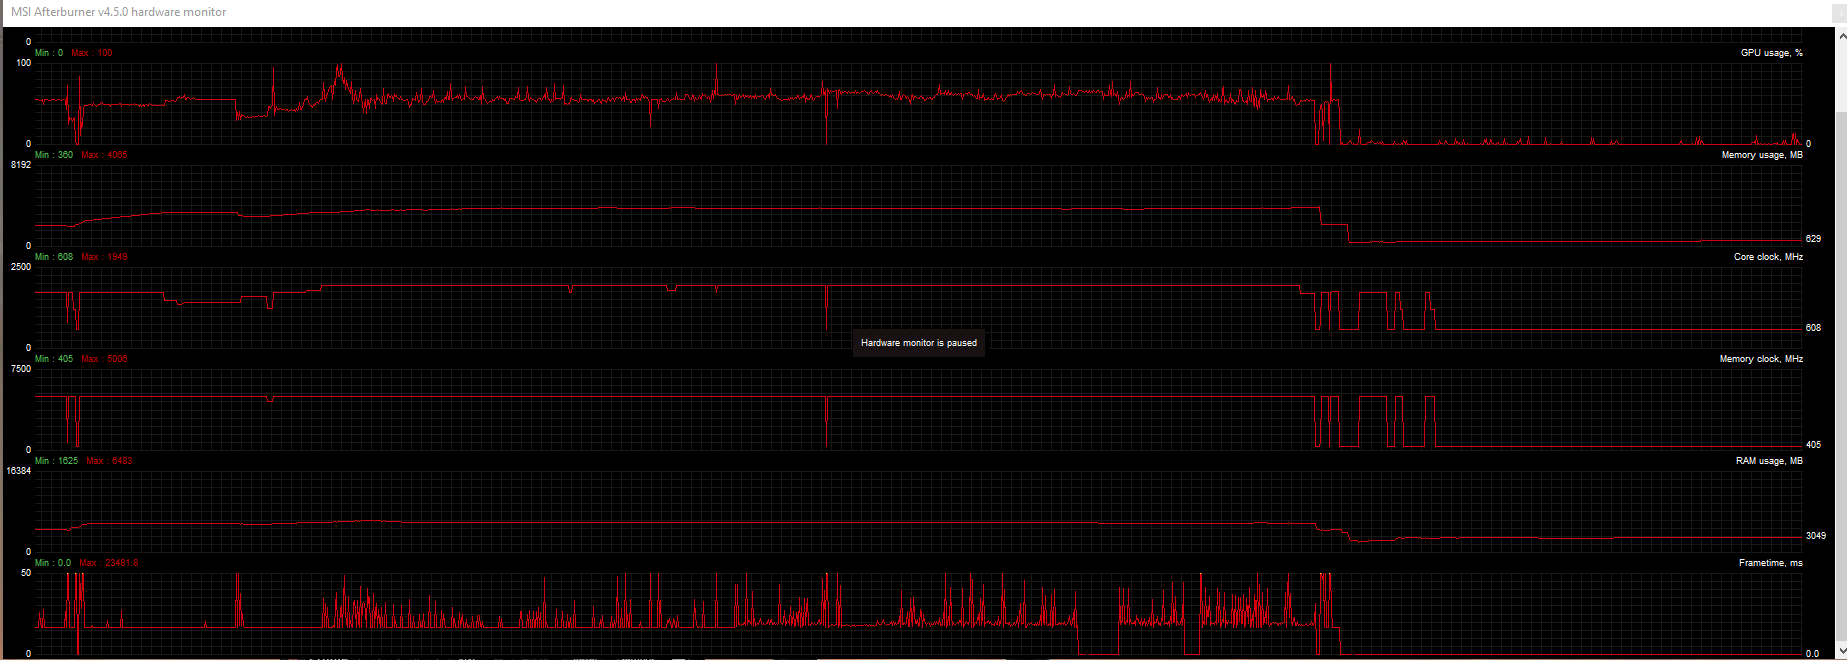 Awful frametime with stutters, can't solve - Troubleshooting